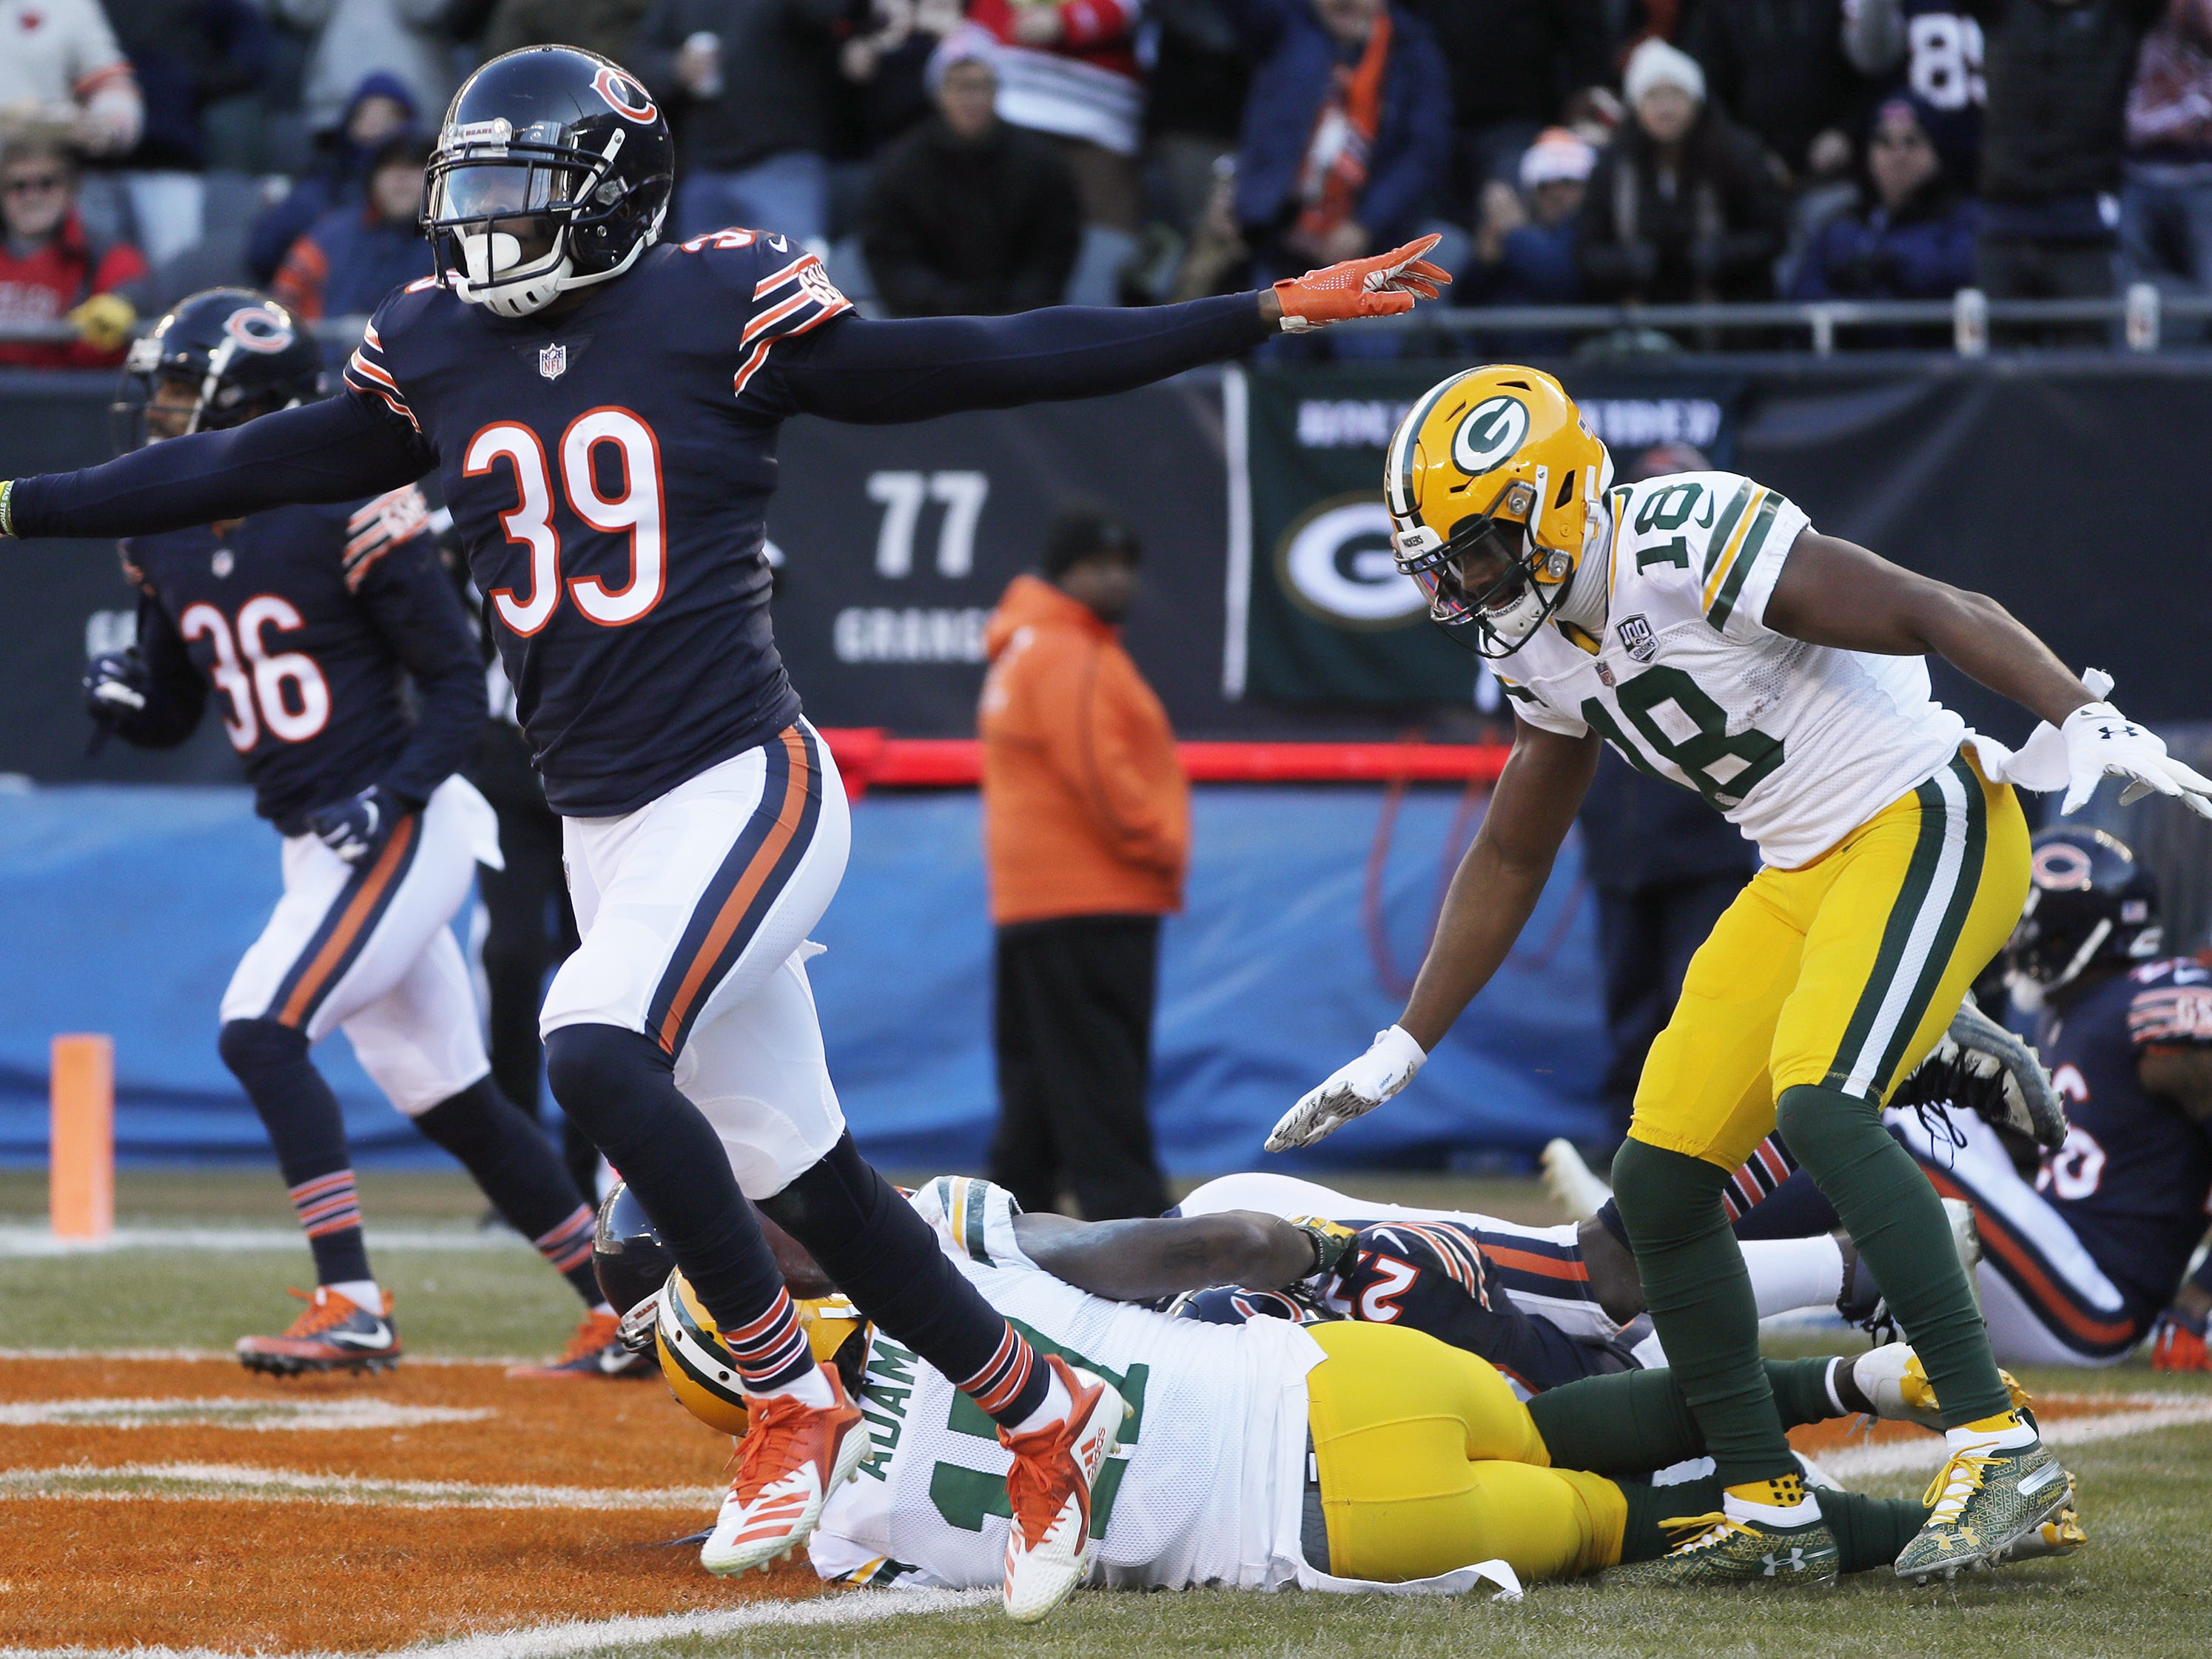 Chicago Bears free safety Eddie Jackson (39) celebrates after a Green Bay Packers incomplete pass in the end zone at the end of the second quarter at Soldier Field on Sunday, December 16, 2018 in Chicago, Illinois. Adam Wesley/USA TODAY NETWORK-Wis